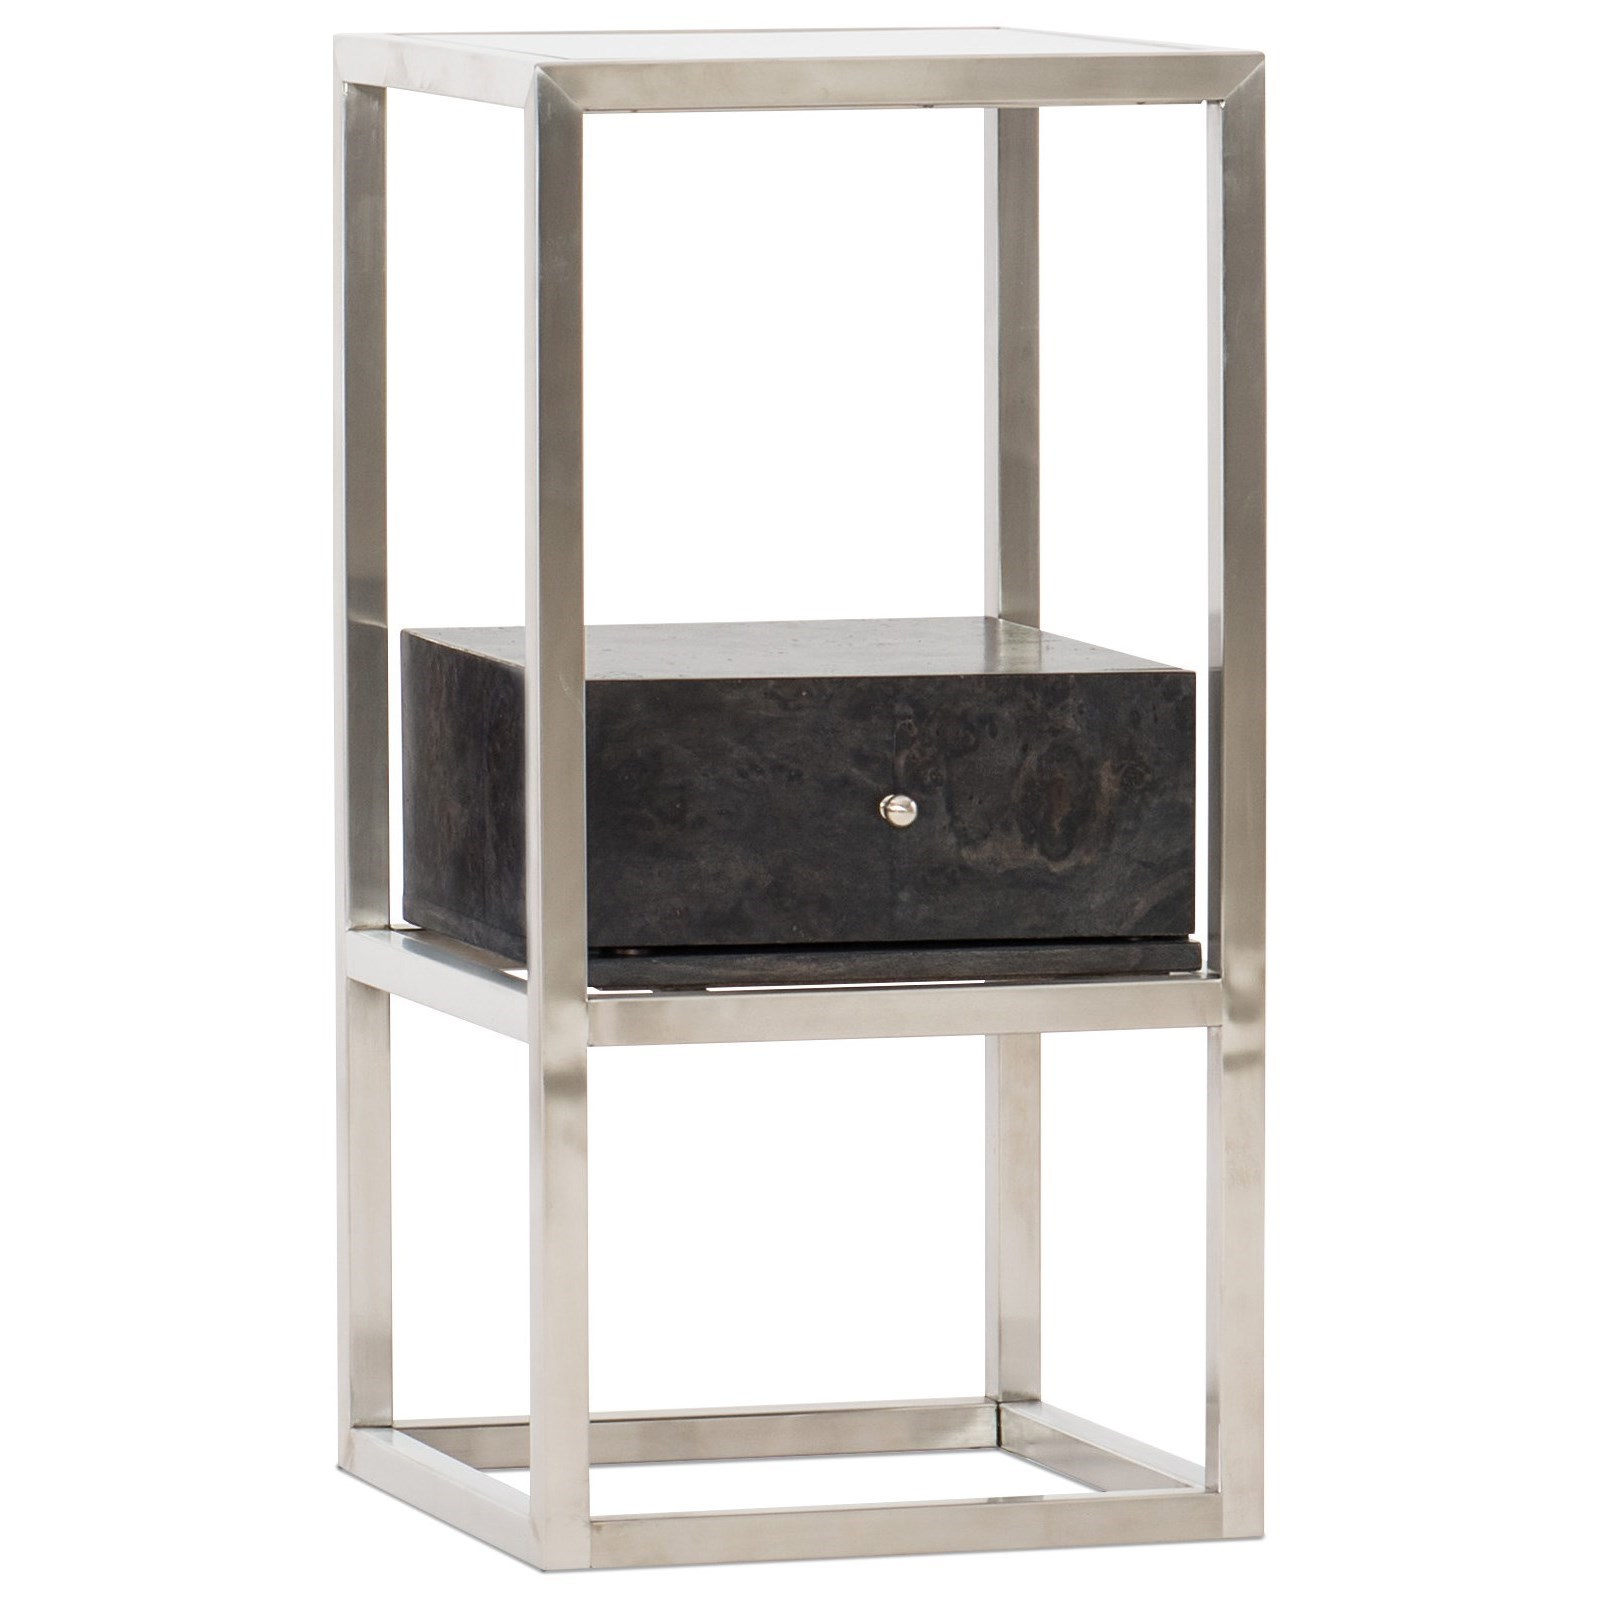 Hooker Furniture 5585-50 Accent End Table - Item Number: 5585-50002-DKW